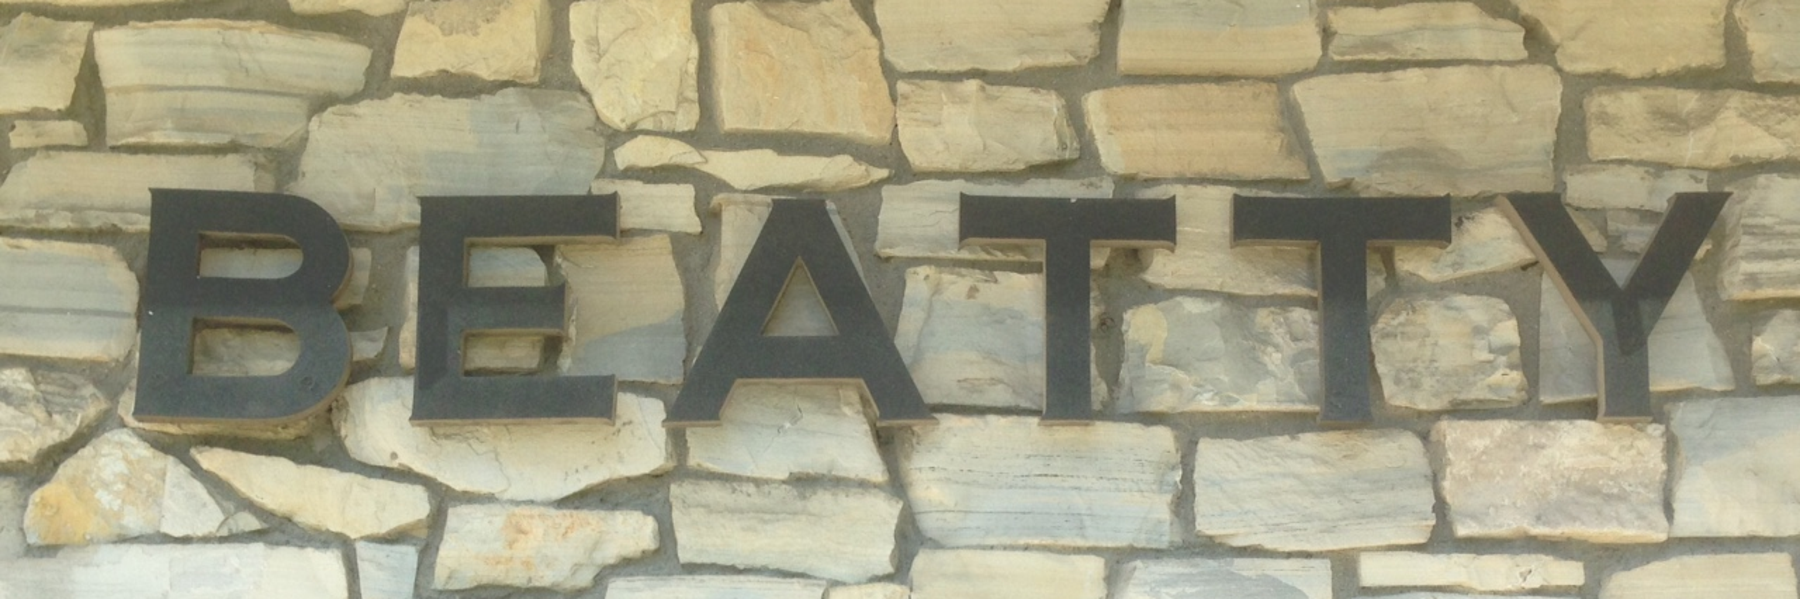 Image of the original Beatty metal signage